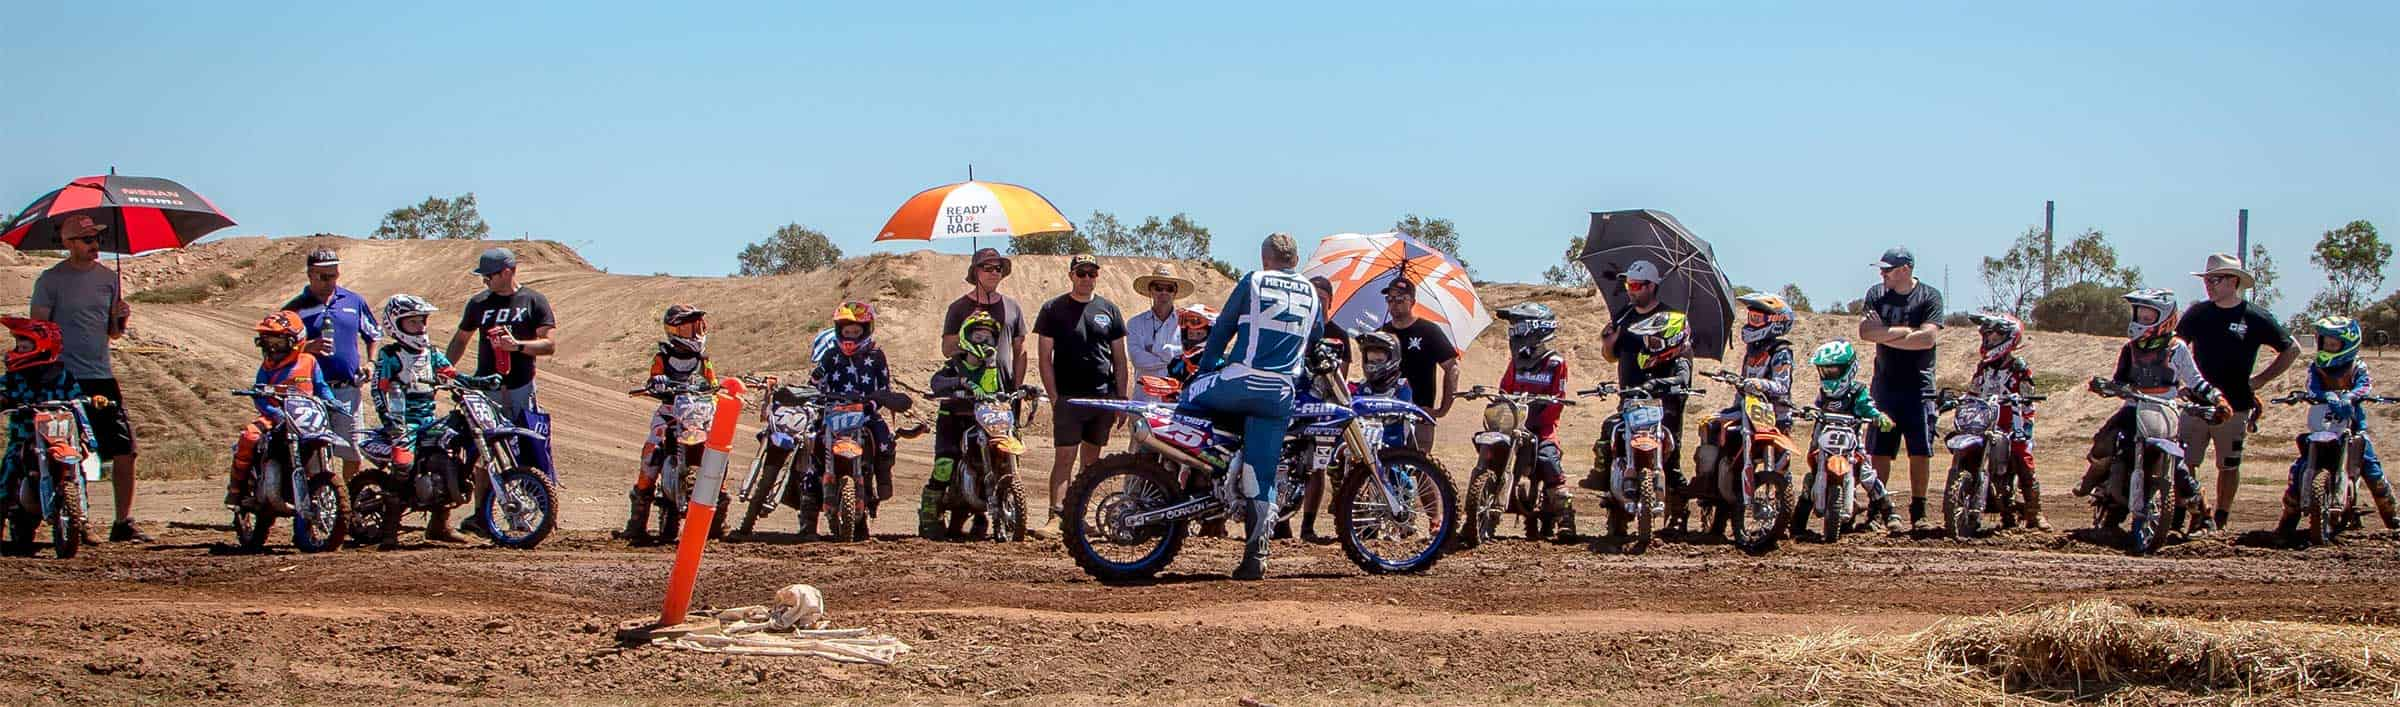 Motocross School Entry Form Holding Image